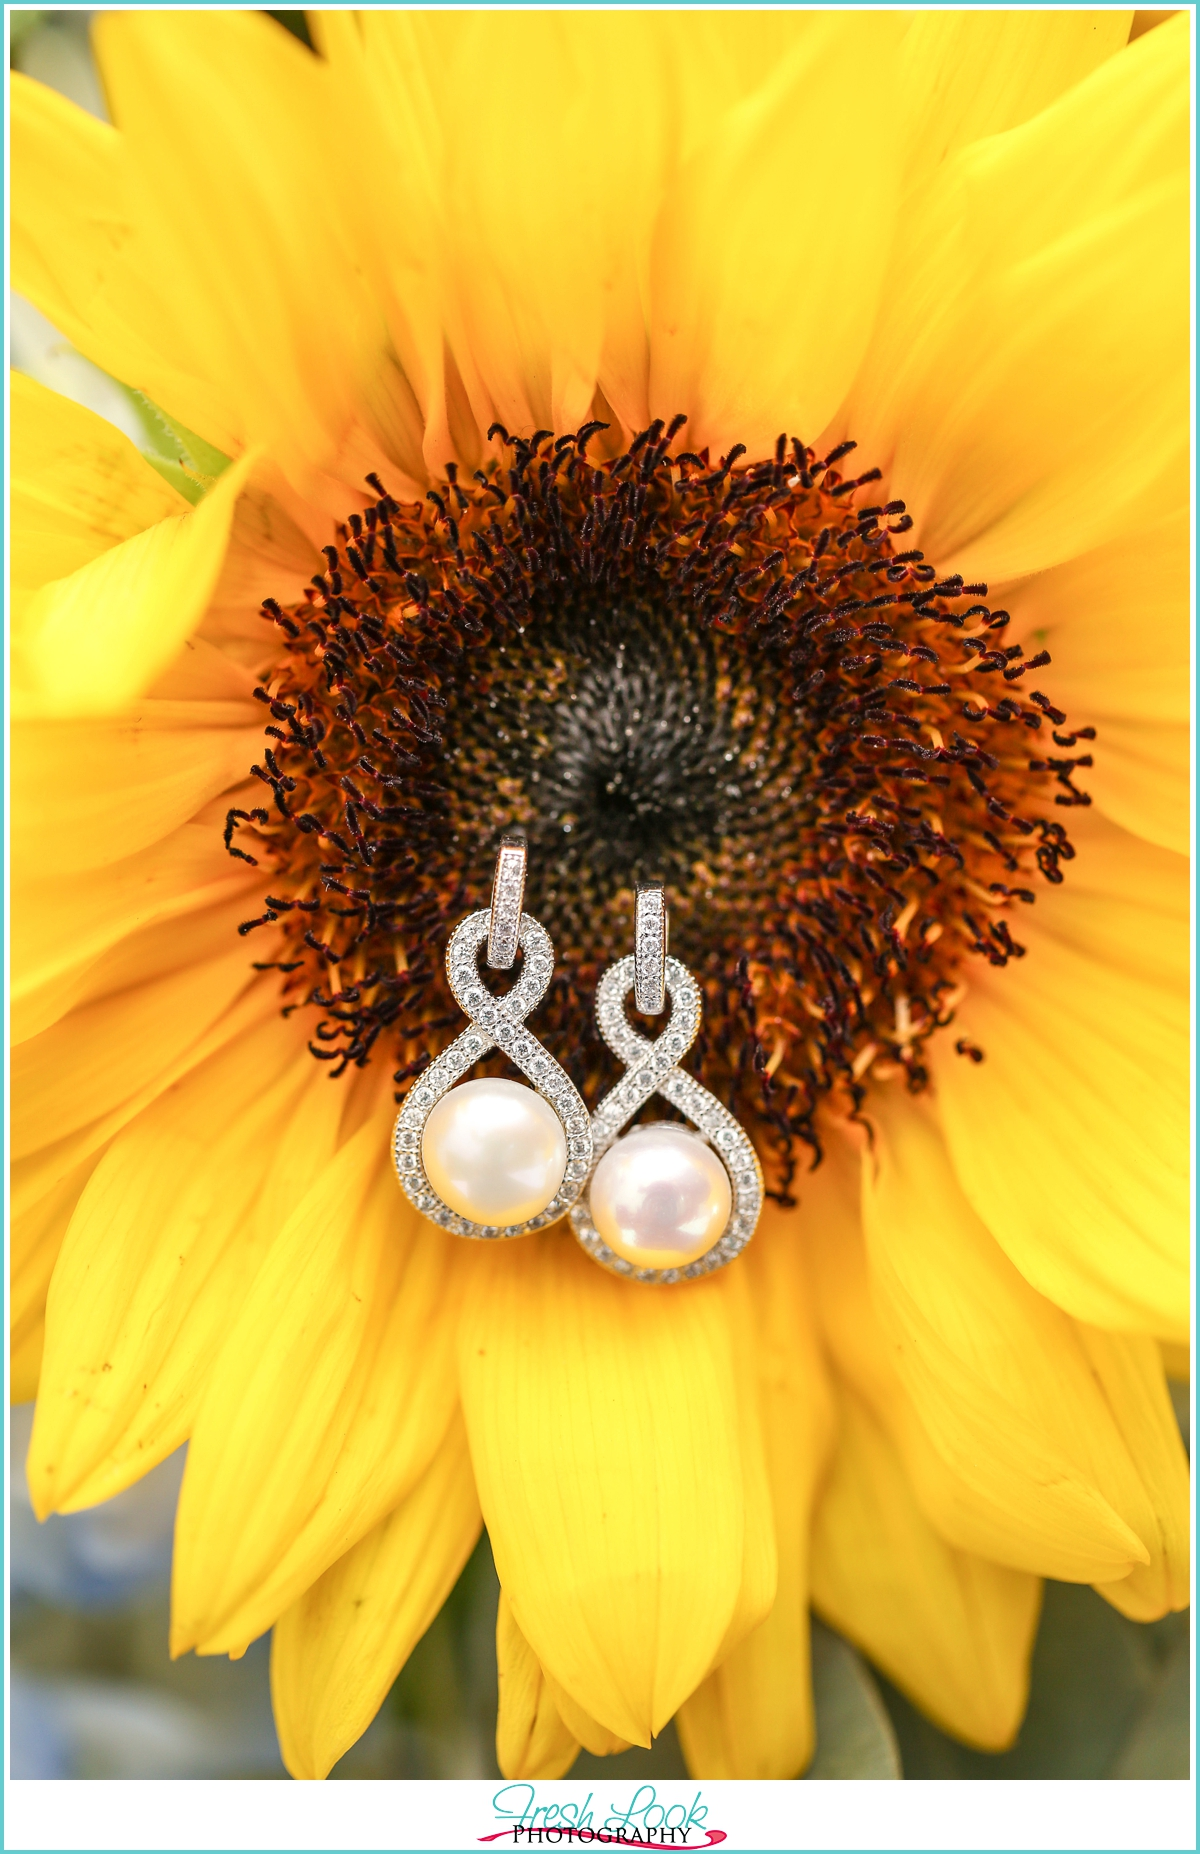 pearl earrings in sunflowers